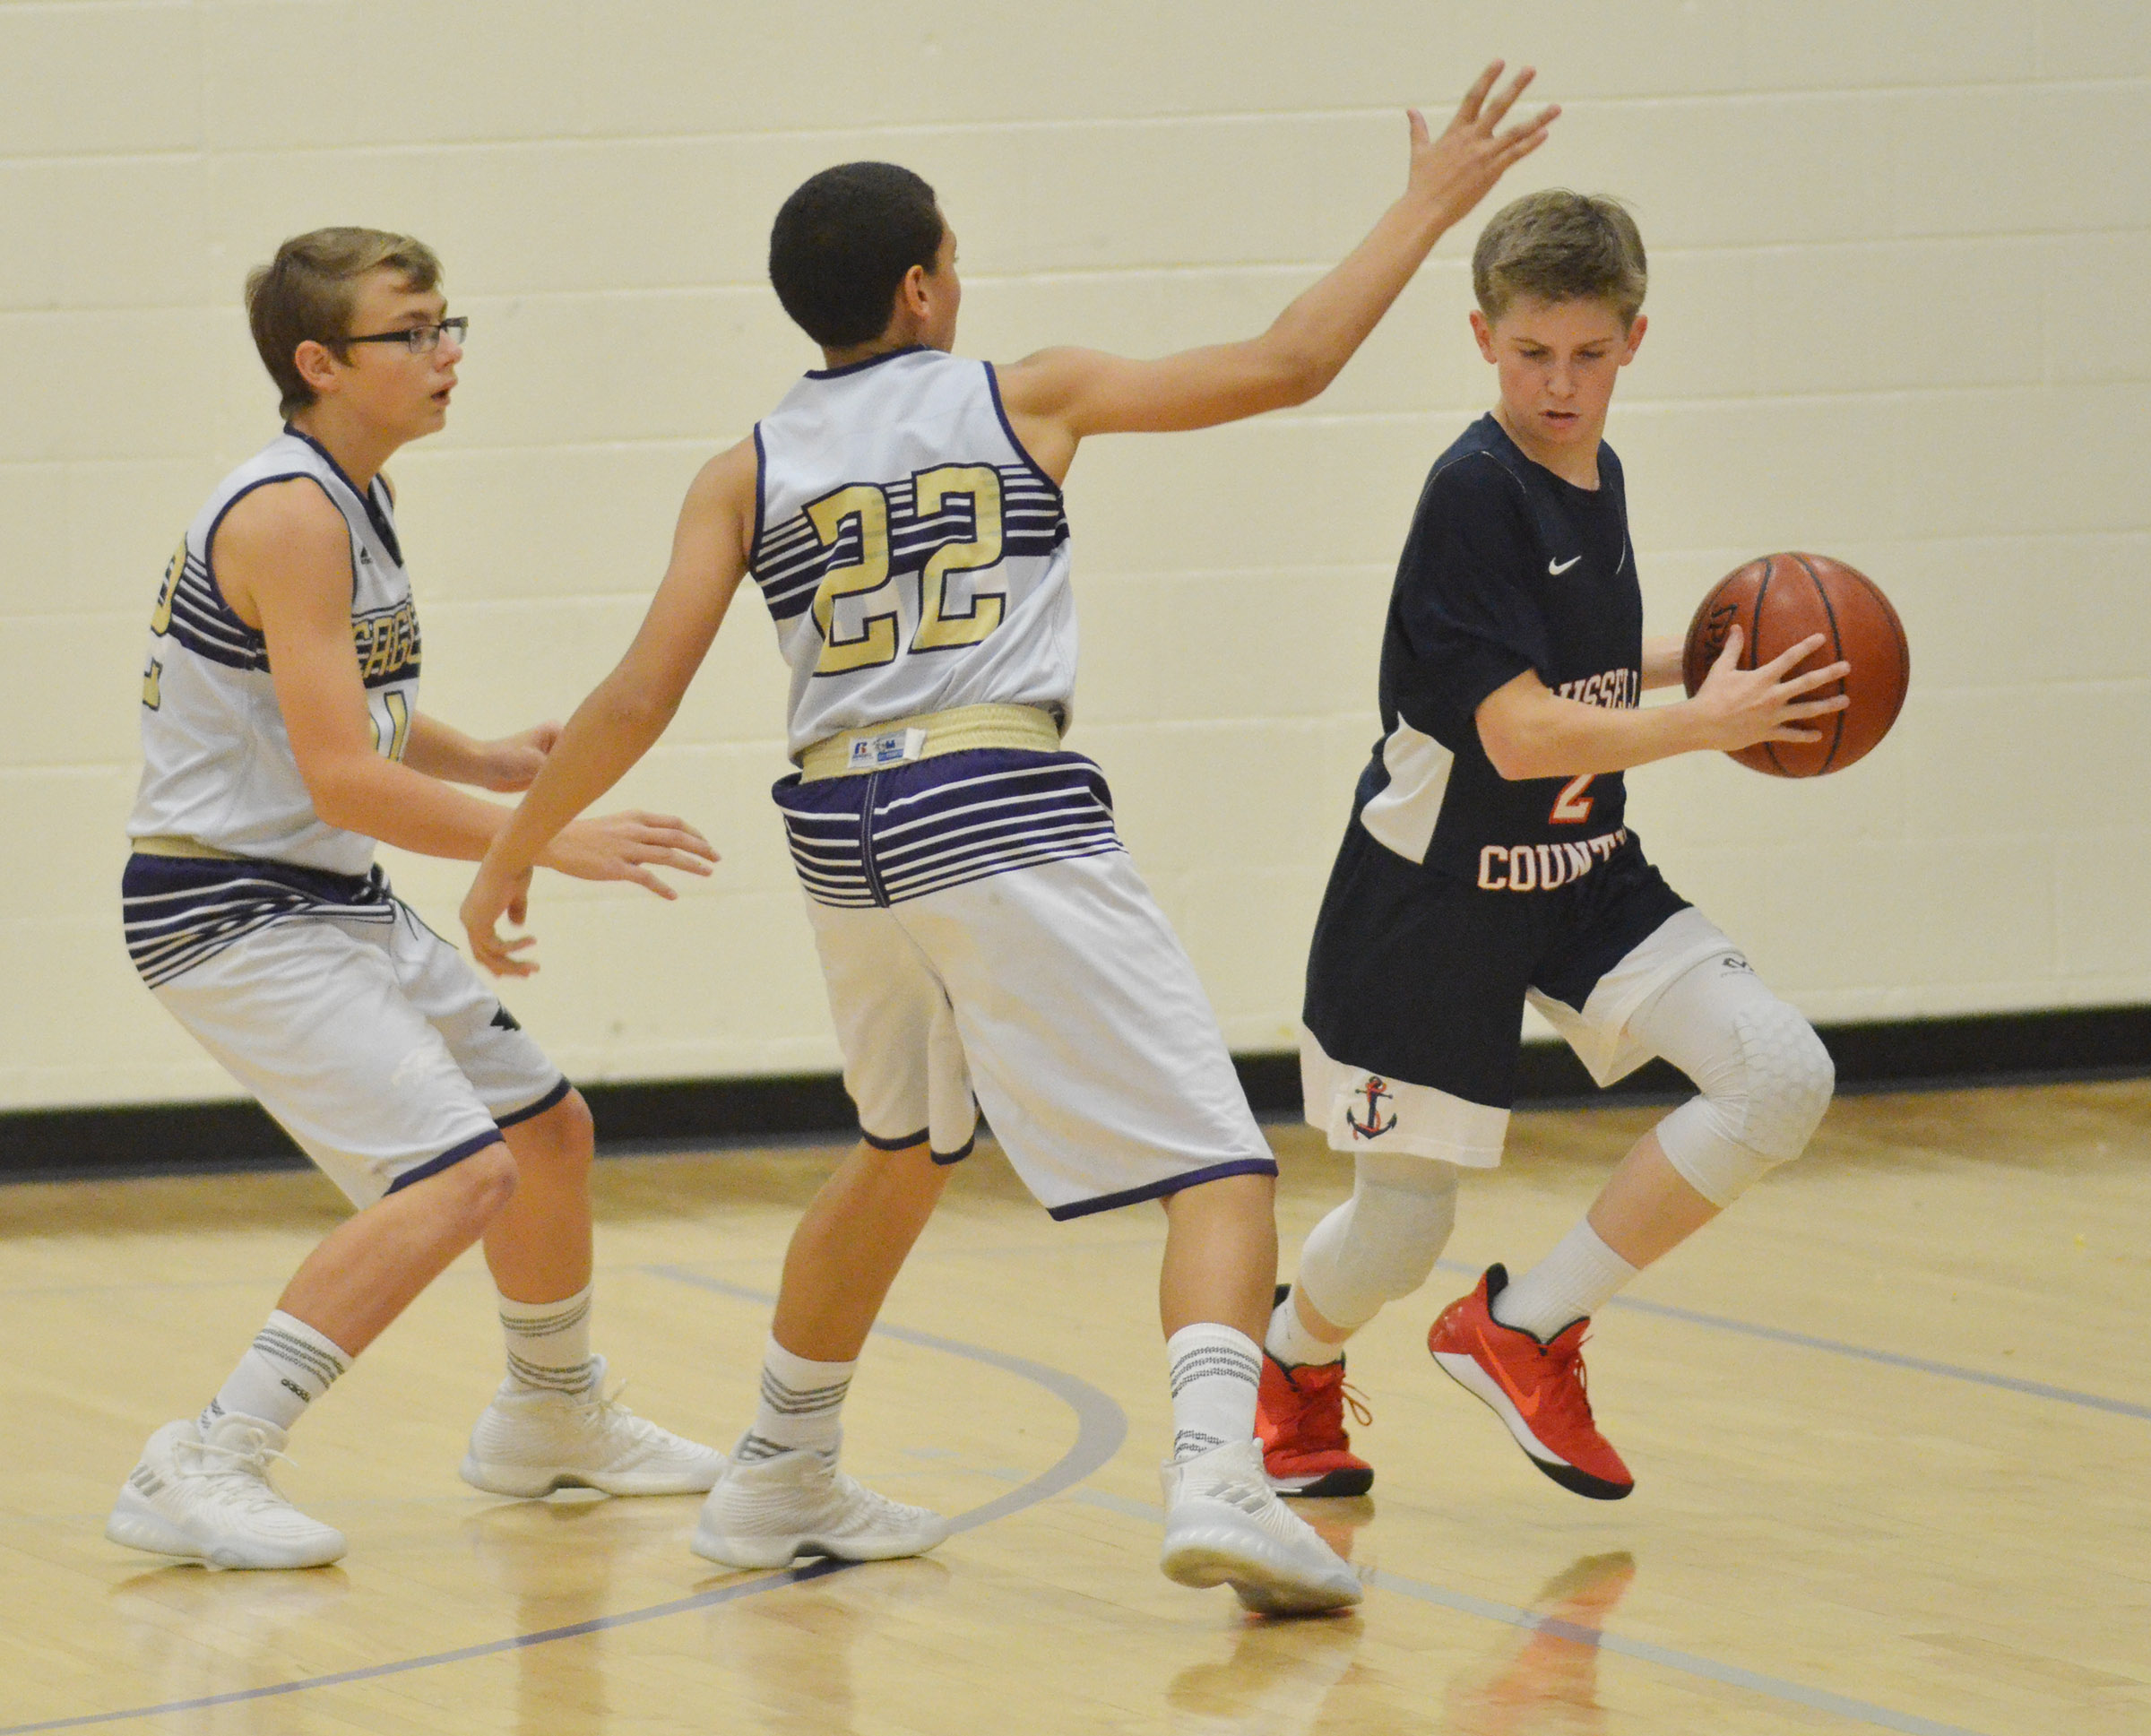 CMS eighth-graders Jarred Mays, at left, and Brice Spaw play defense.